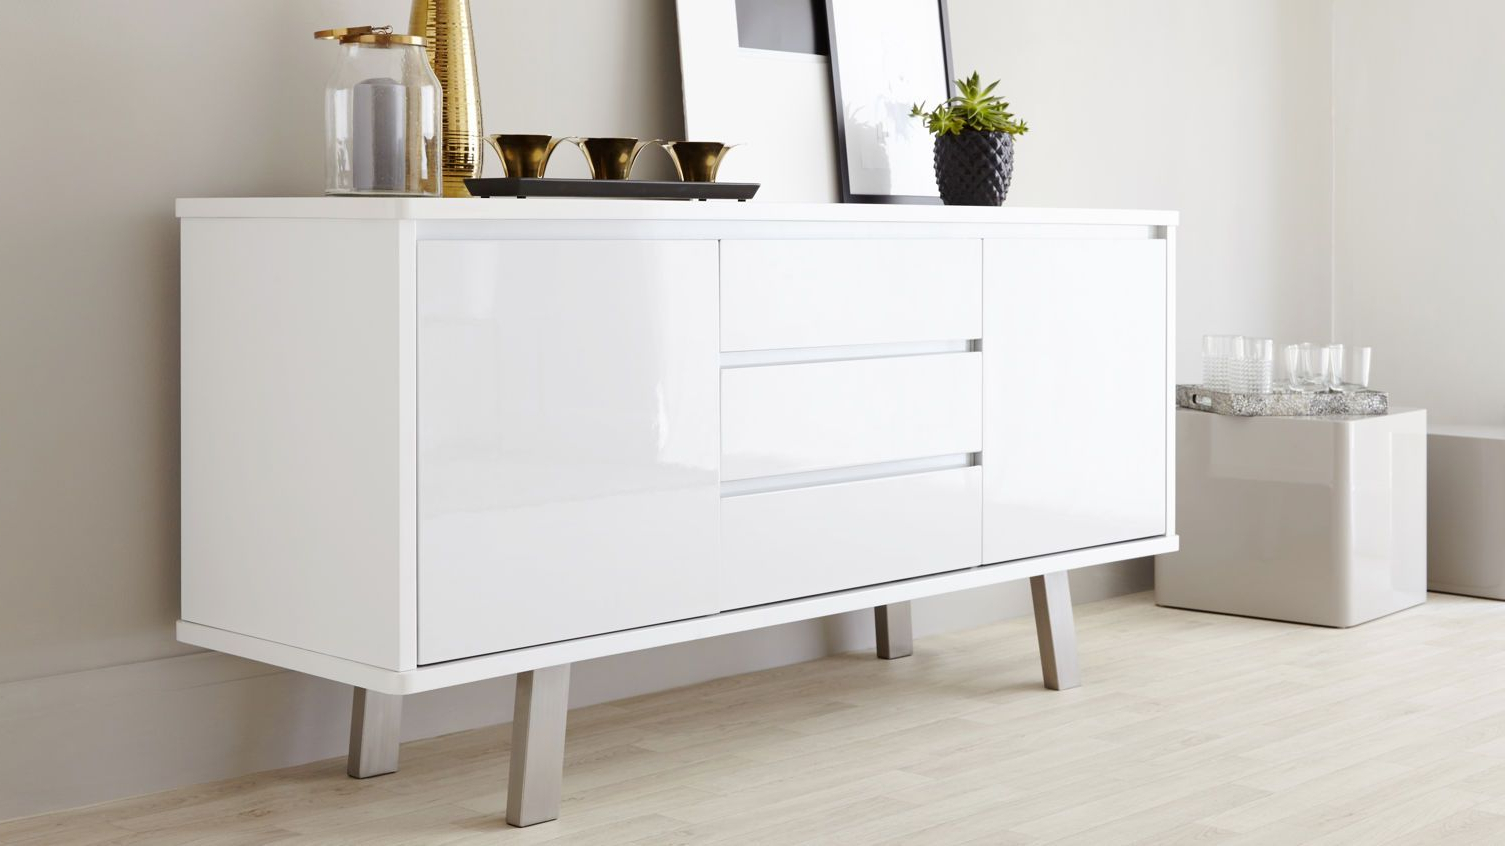 Assi White Gloss Sideboard | Danetti | Stylish Sideboards In With Regard To White Wood And Chrome Metal High Gloss Buffets (View 2 of 20)